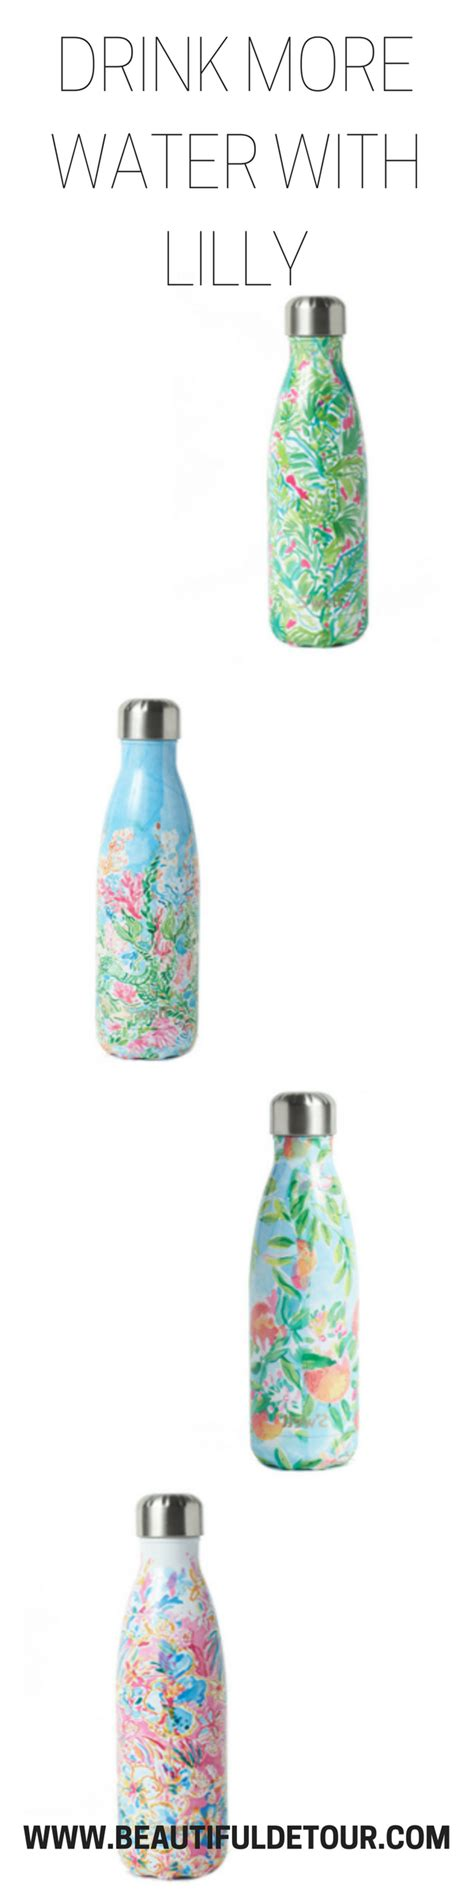 lily pulitzer swell bottle tone it up tuesday starbucks lilly pulitzer swell bottle